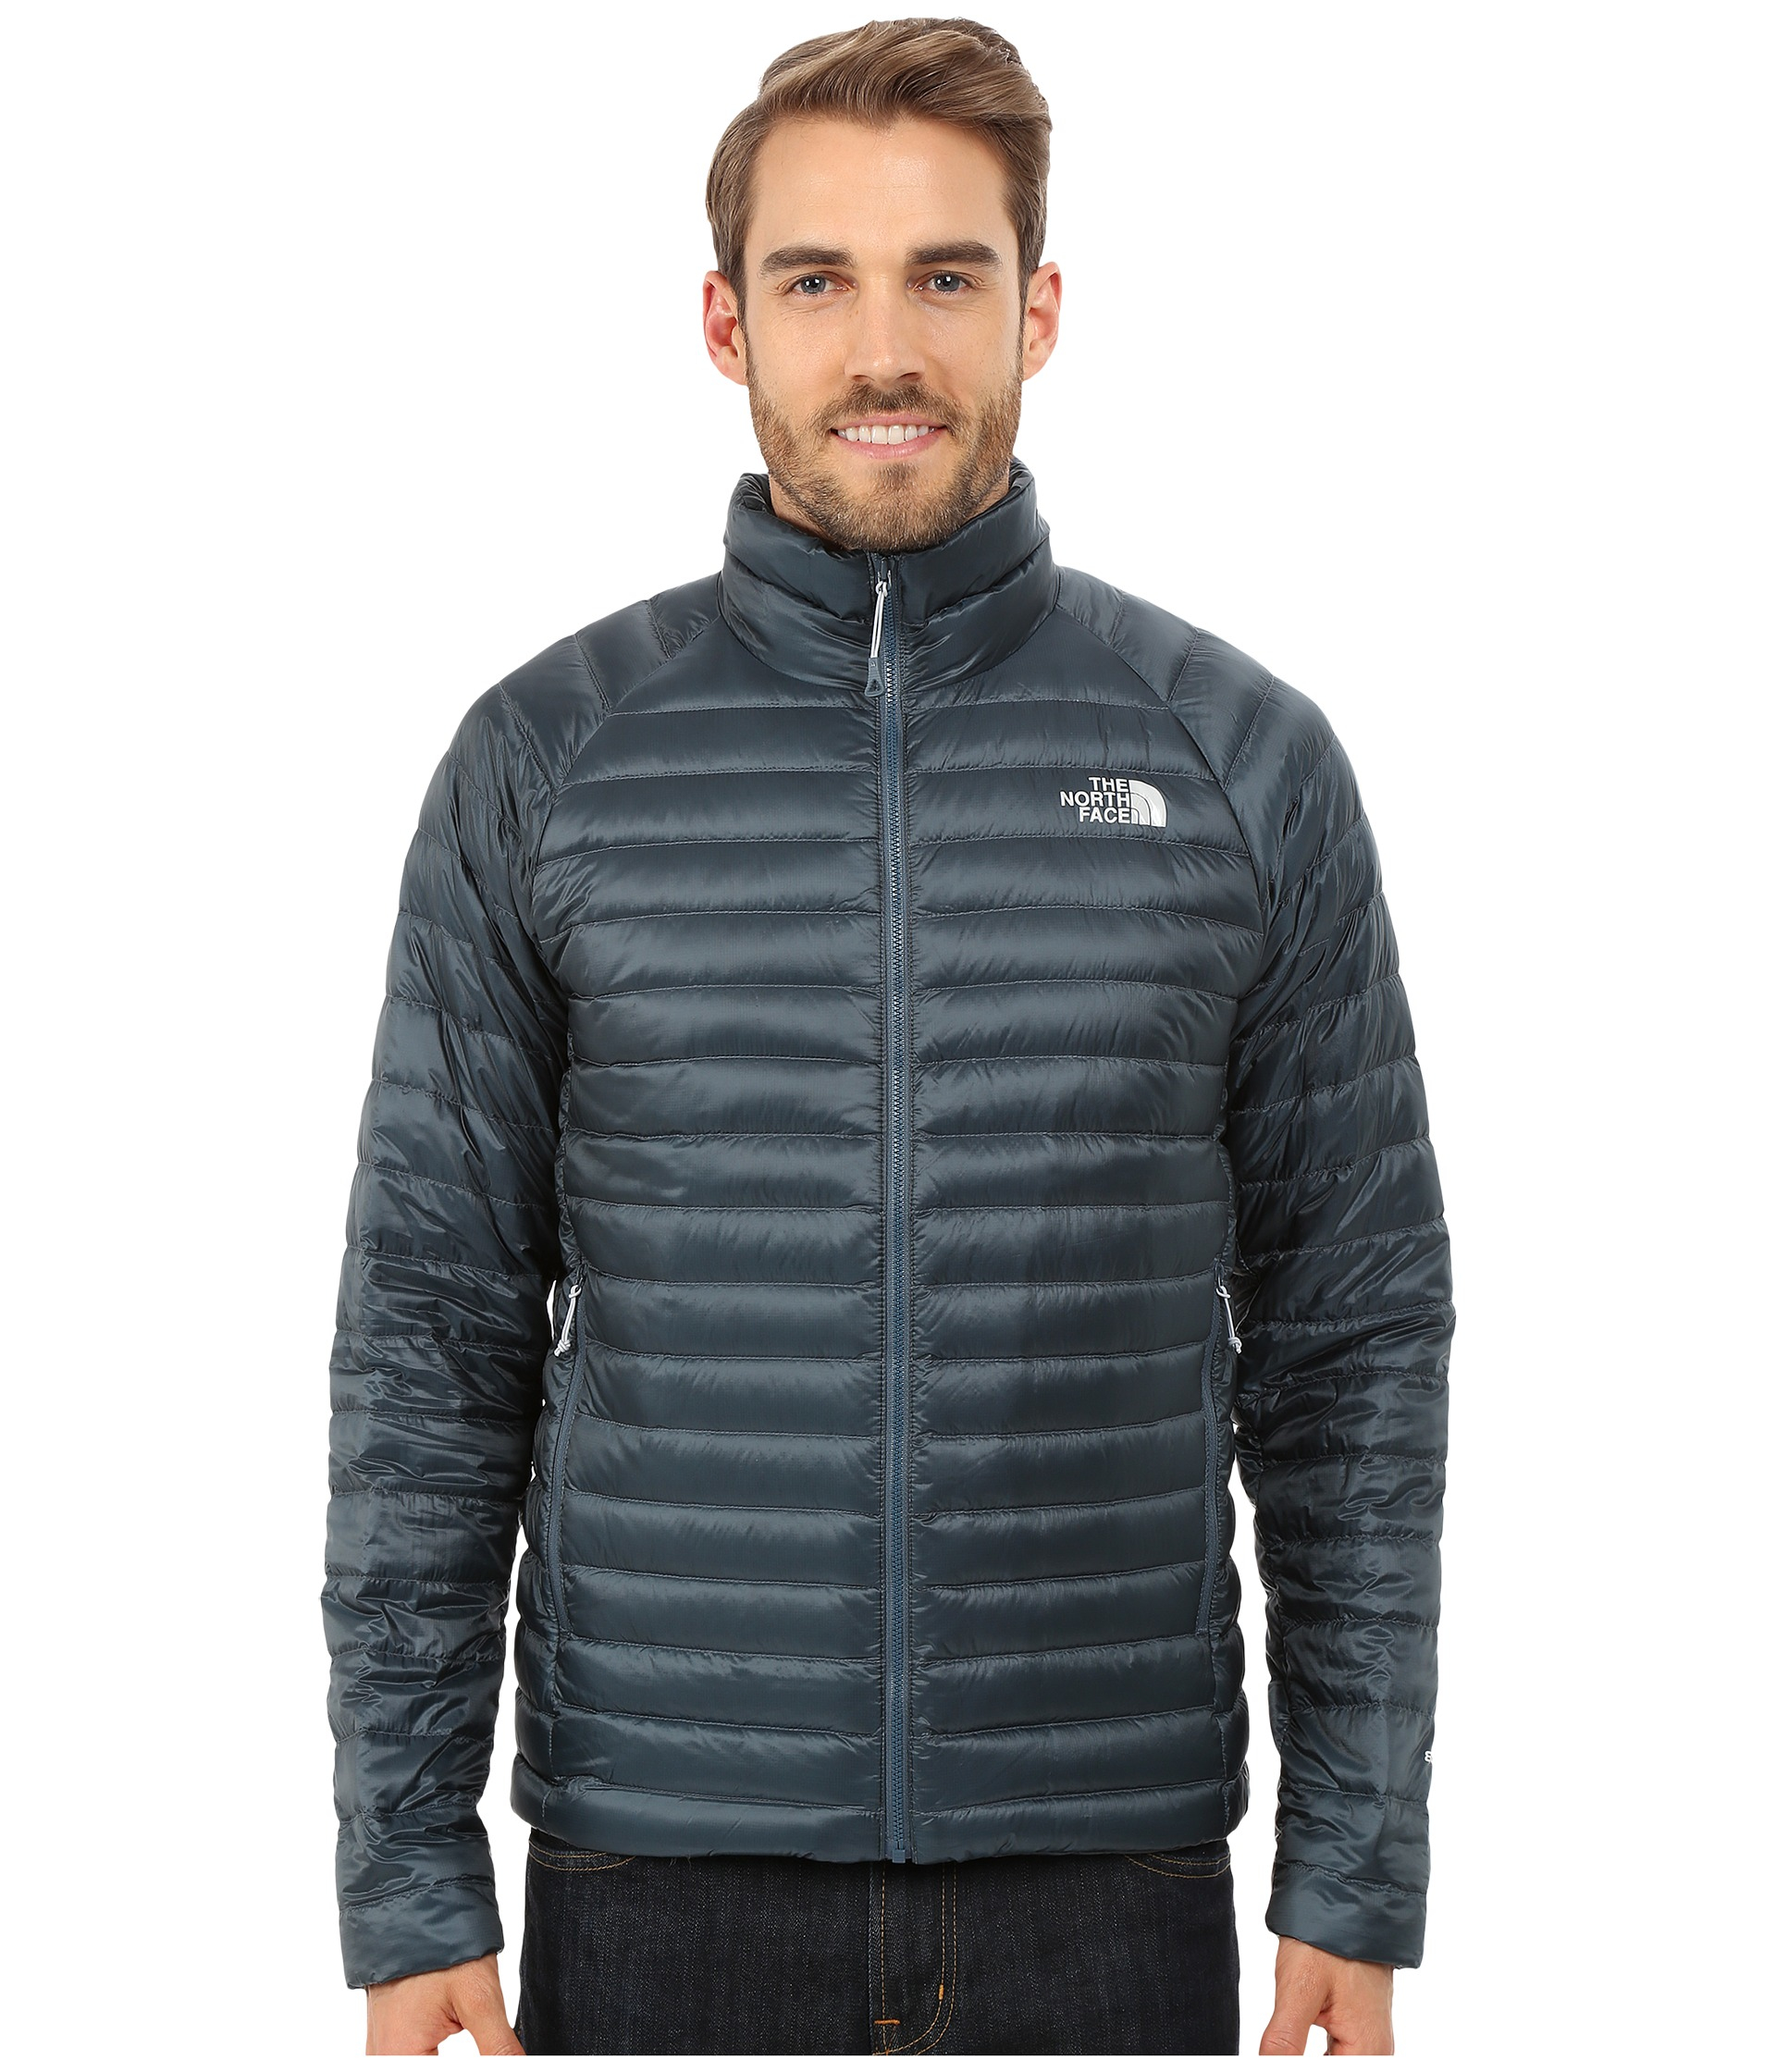 6cabf6dcd ireland the north face mens quince vest 06ad3 73c8c